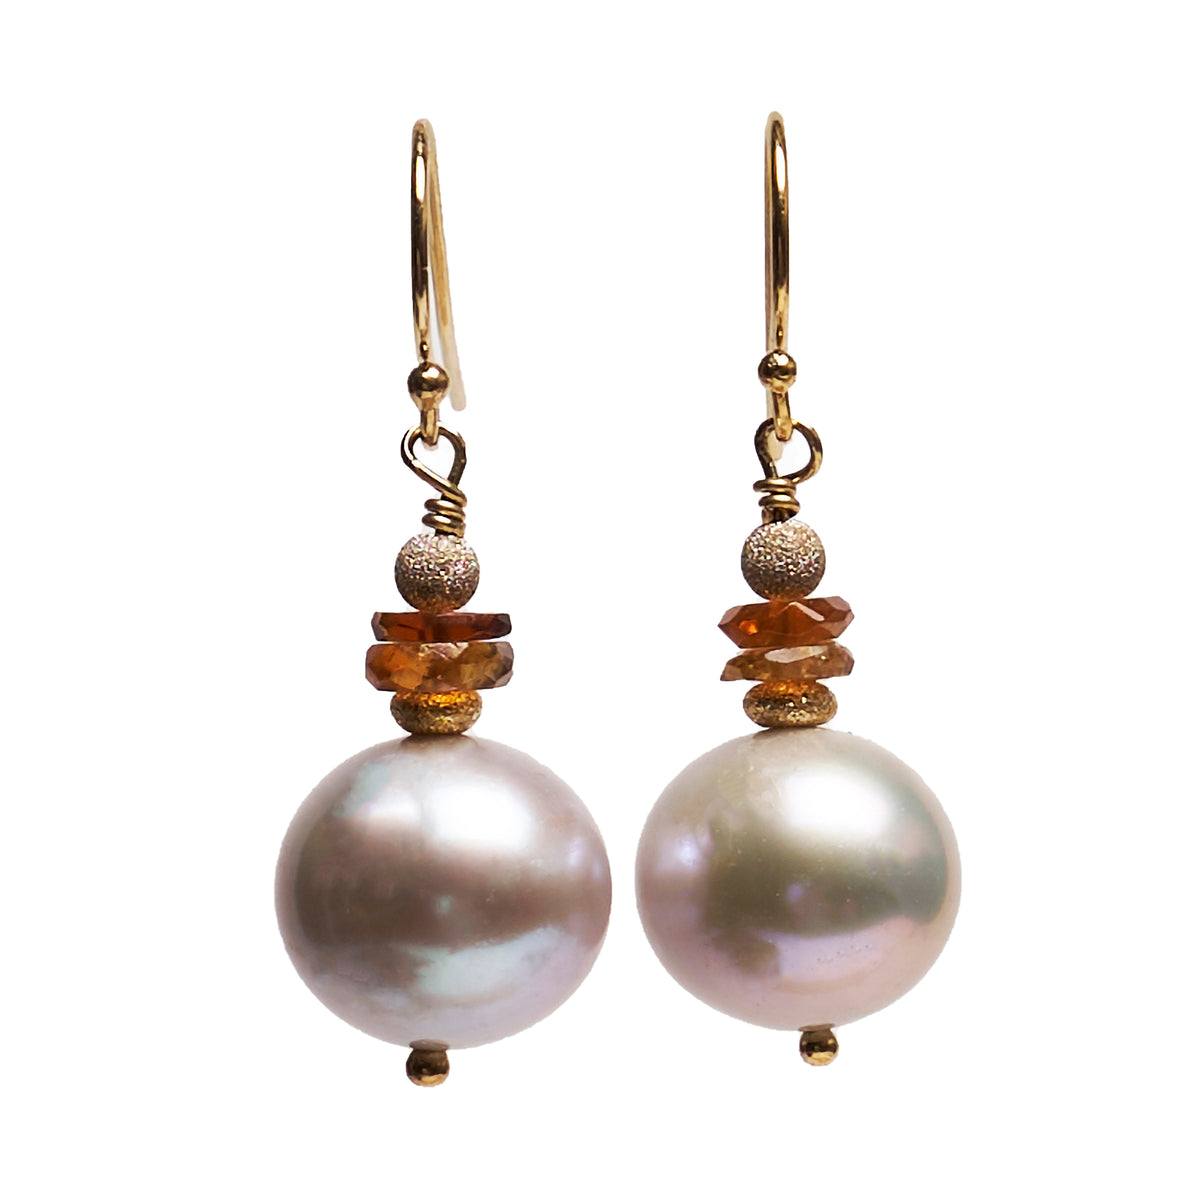 Pearl, Hessonite Garnet, Gold earring